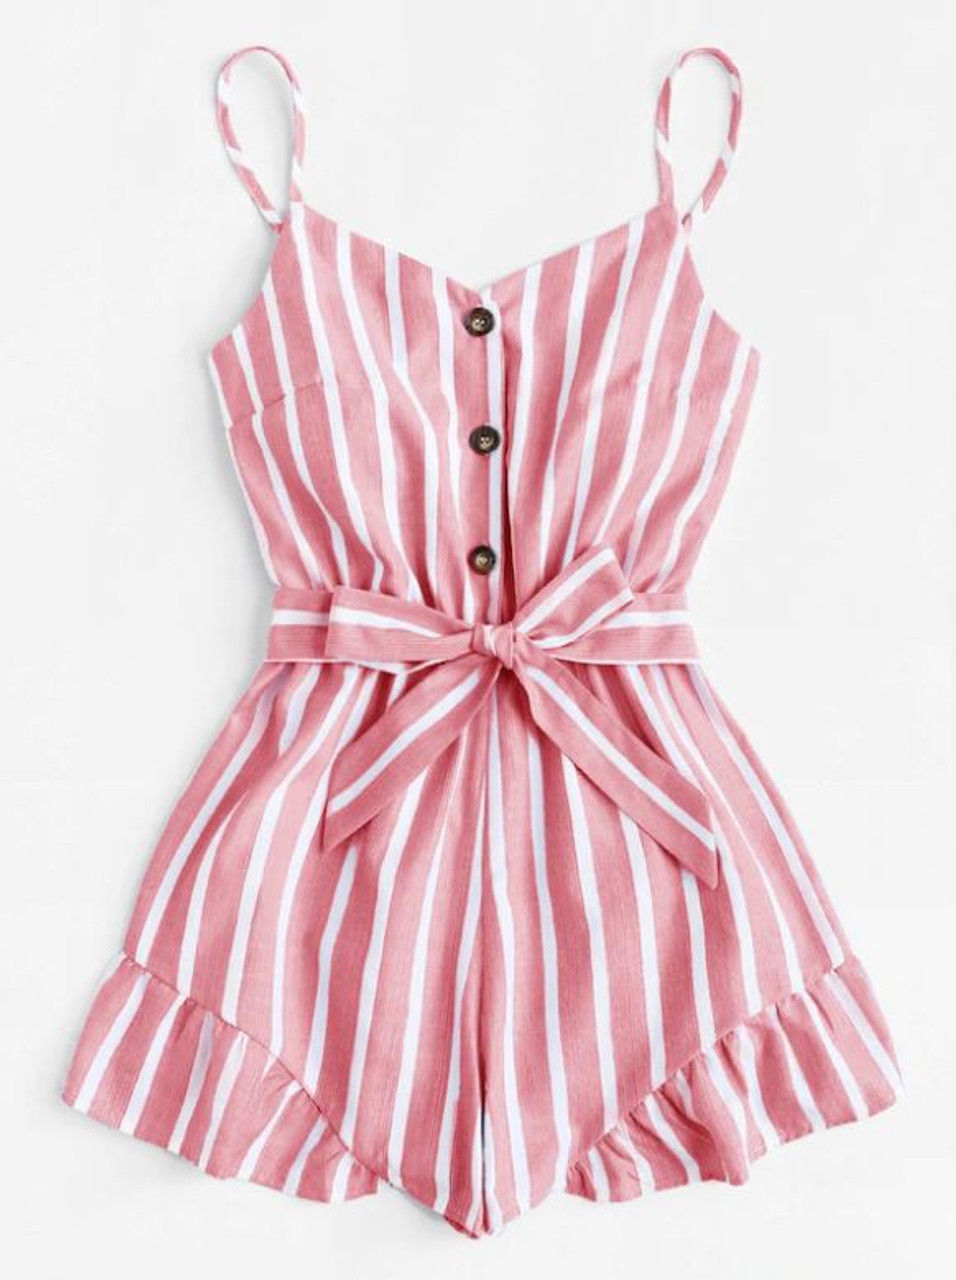 9c1ce9539 Pink and White Stripe Romper - Coopers Hill Boutique